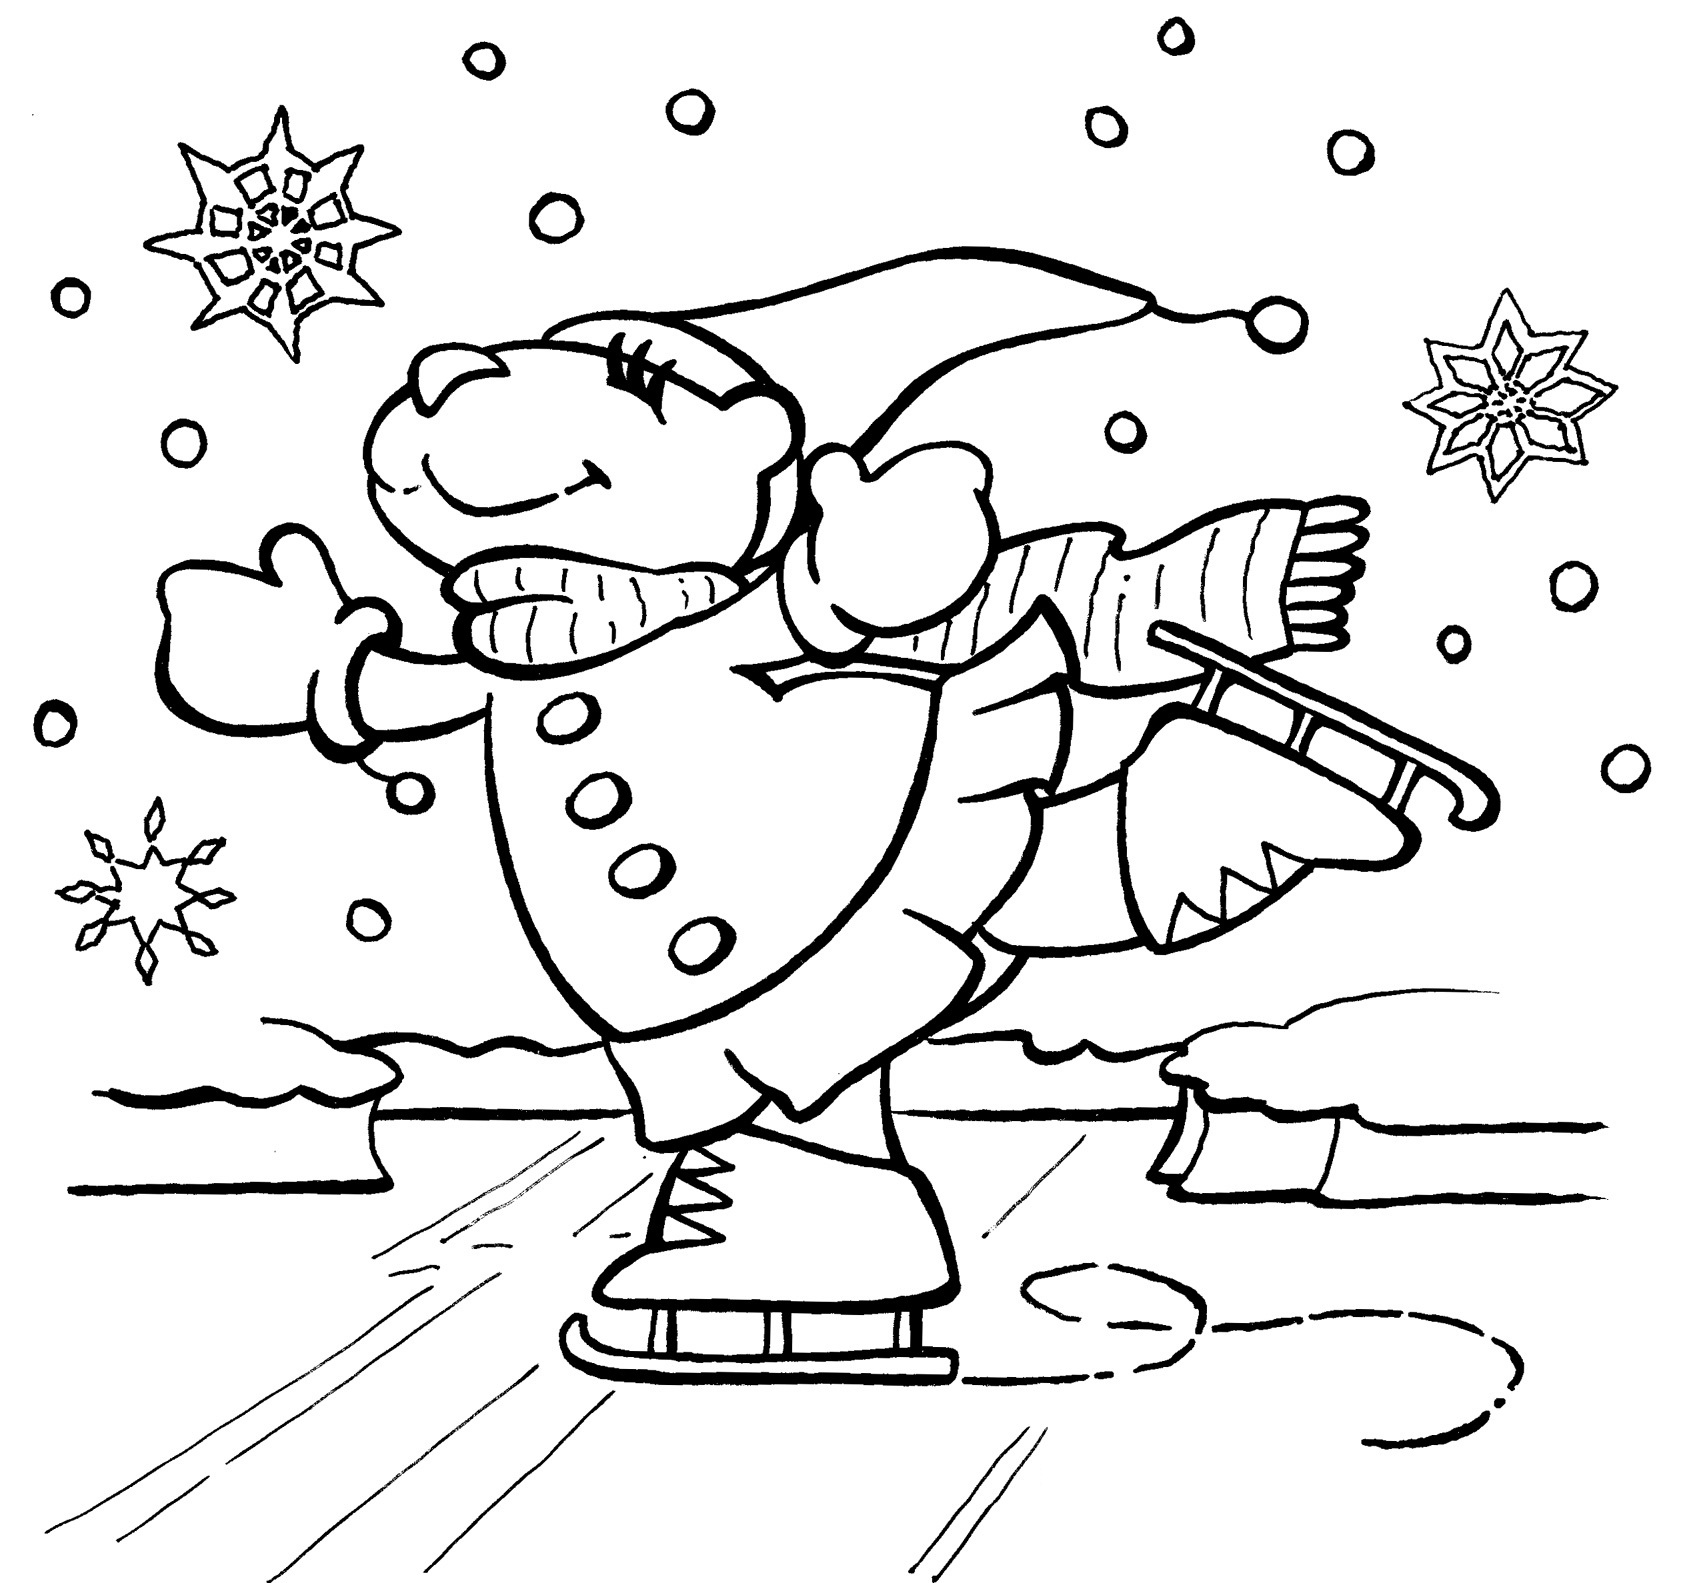 Coloring Pages ~ Awesome Free Winter Coloring Pages Kids For 47 - Free Printable Winter Coloring Pages